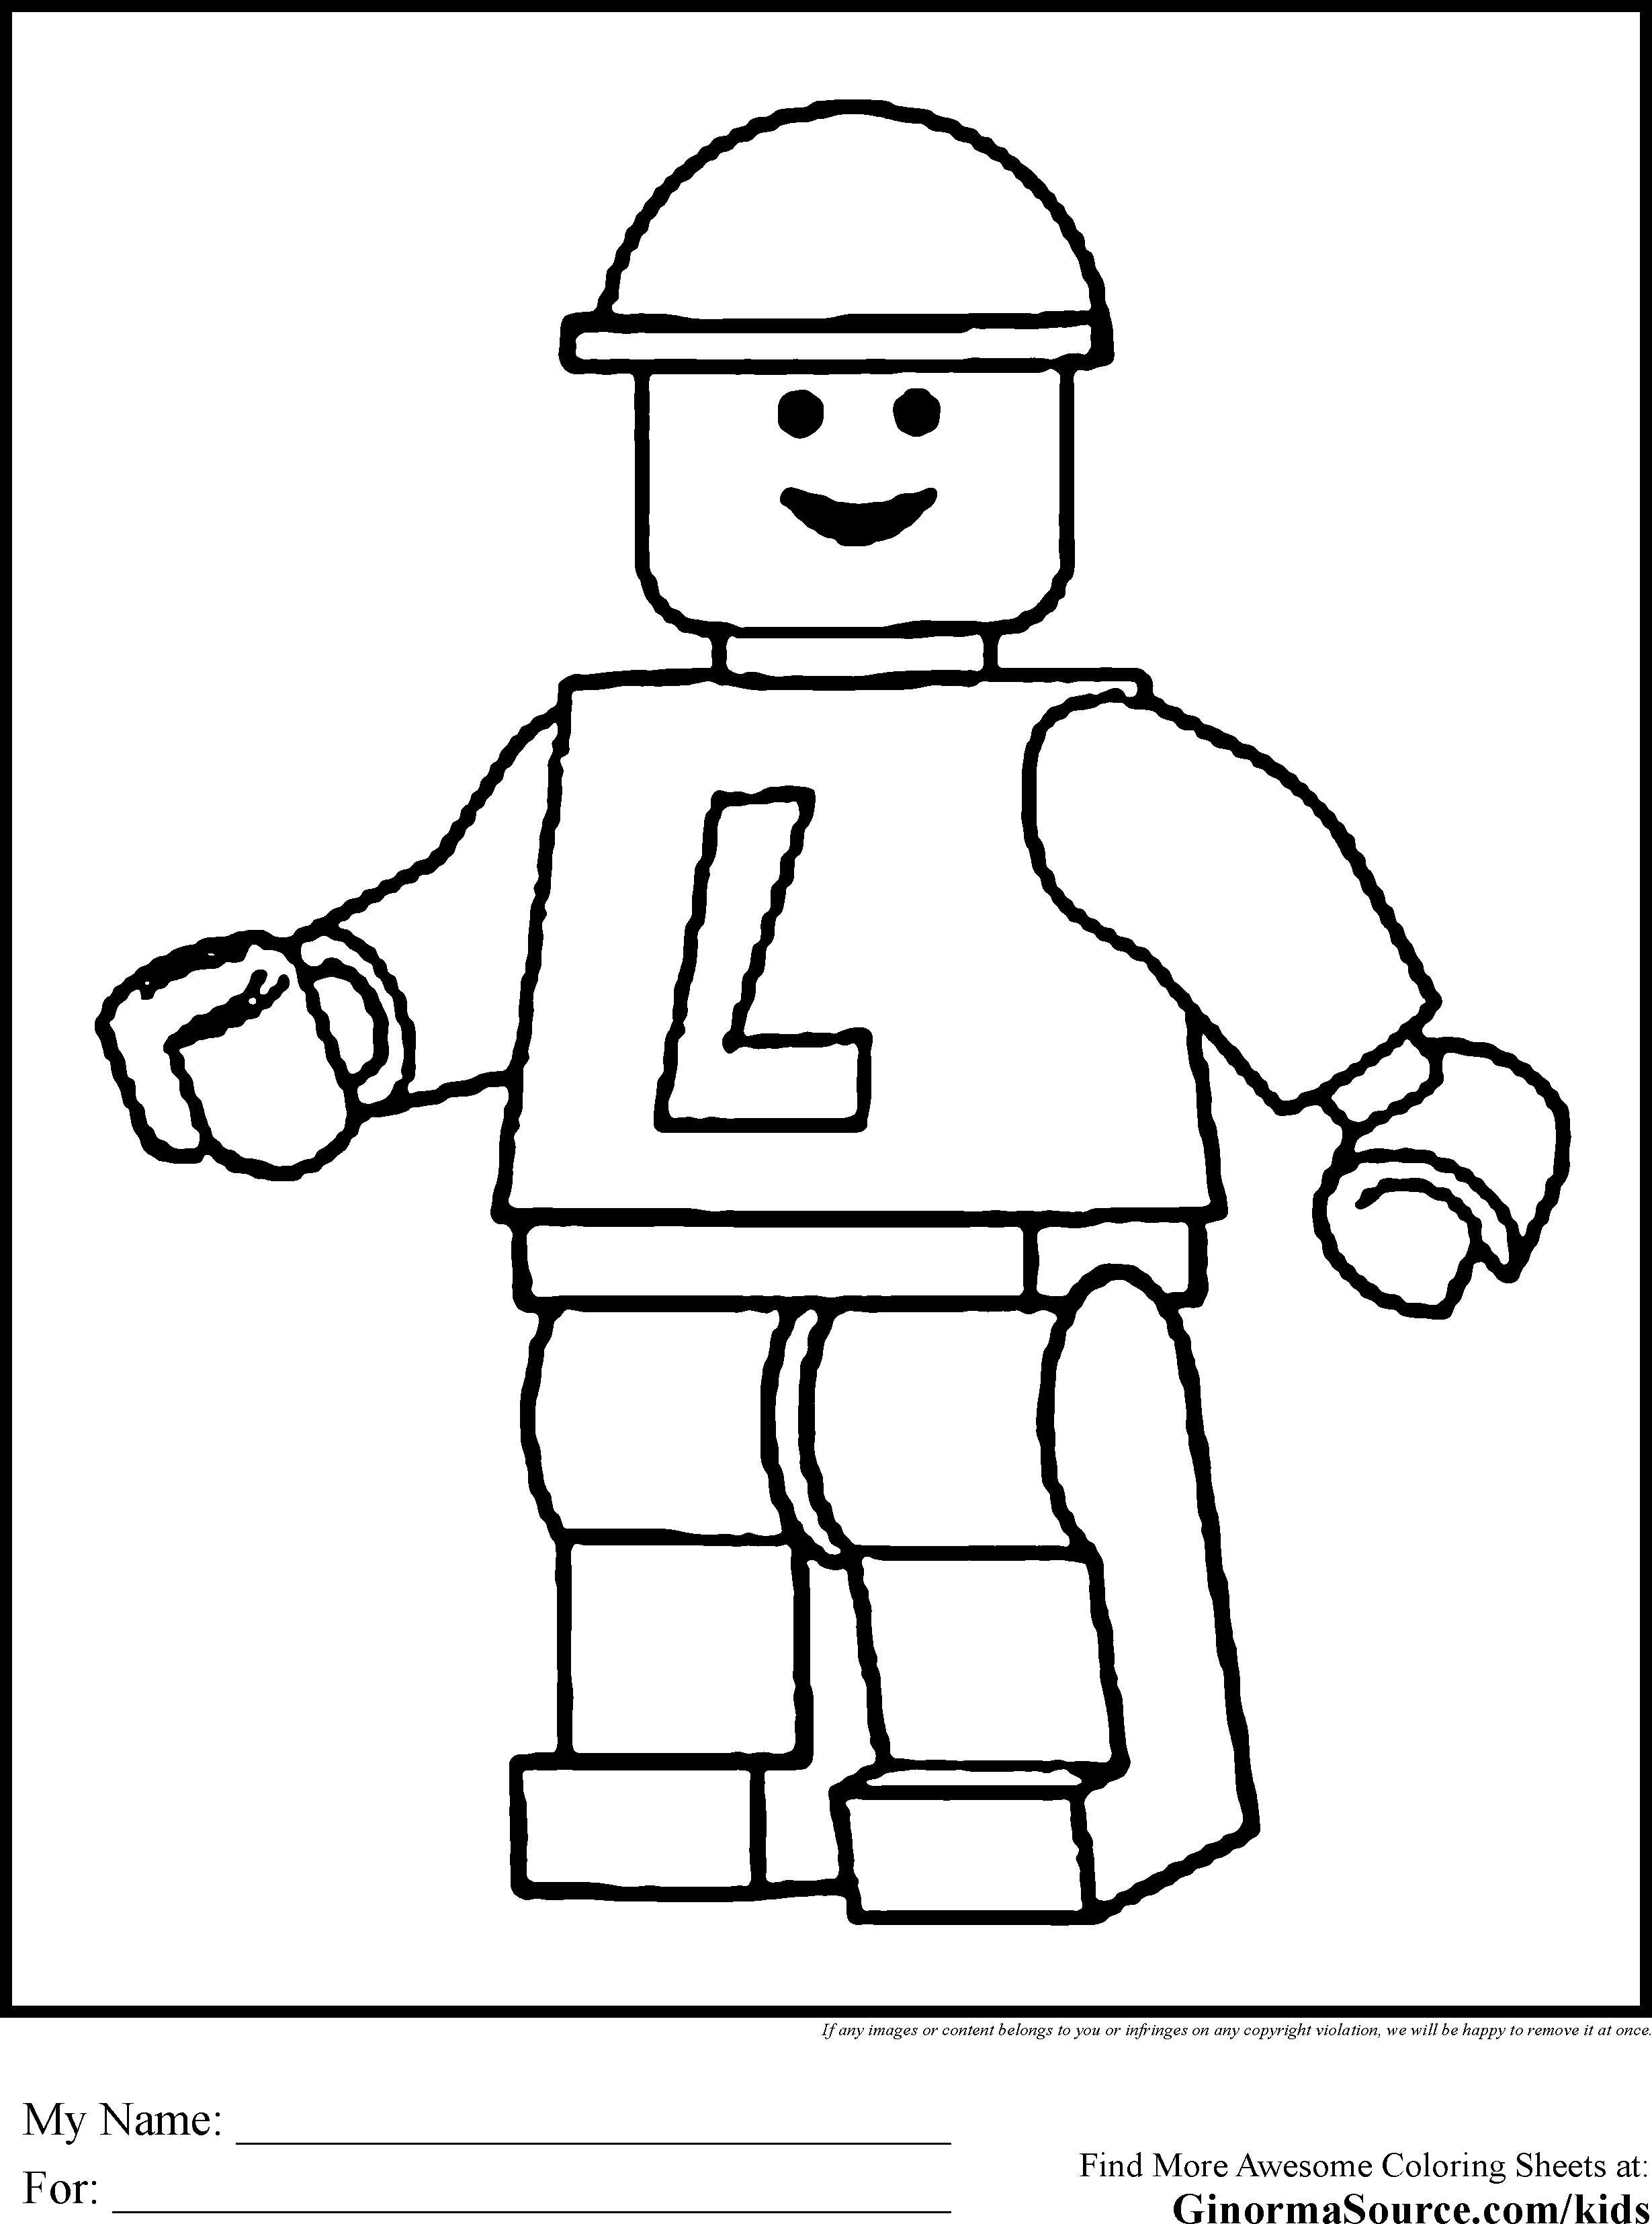 coloring picture lego free printable lego coloring pages for kids cool2bkids picture lego coloring